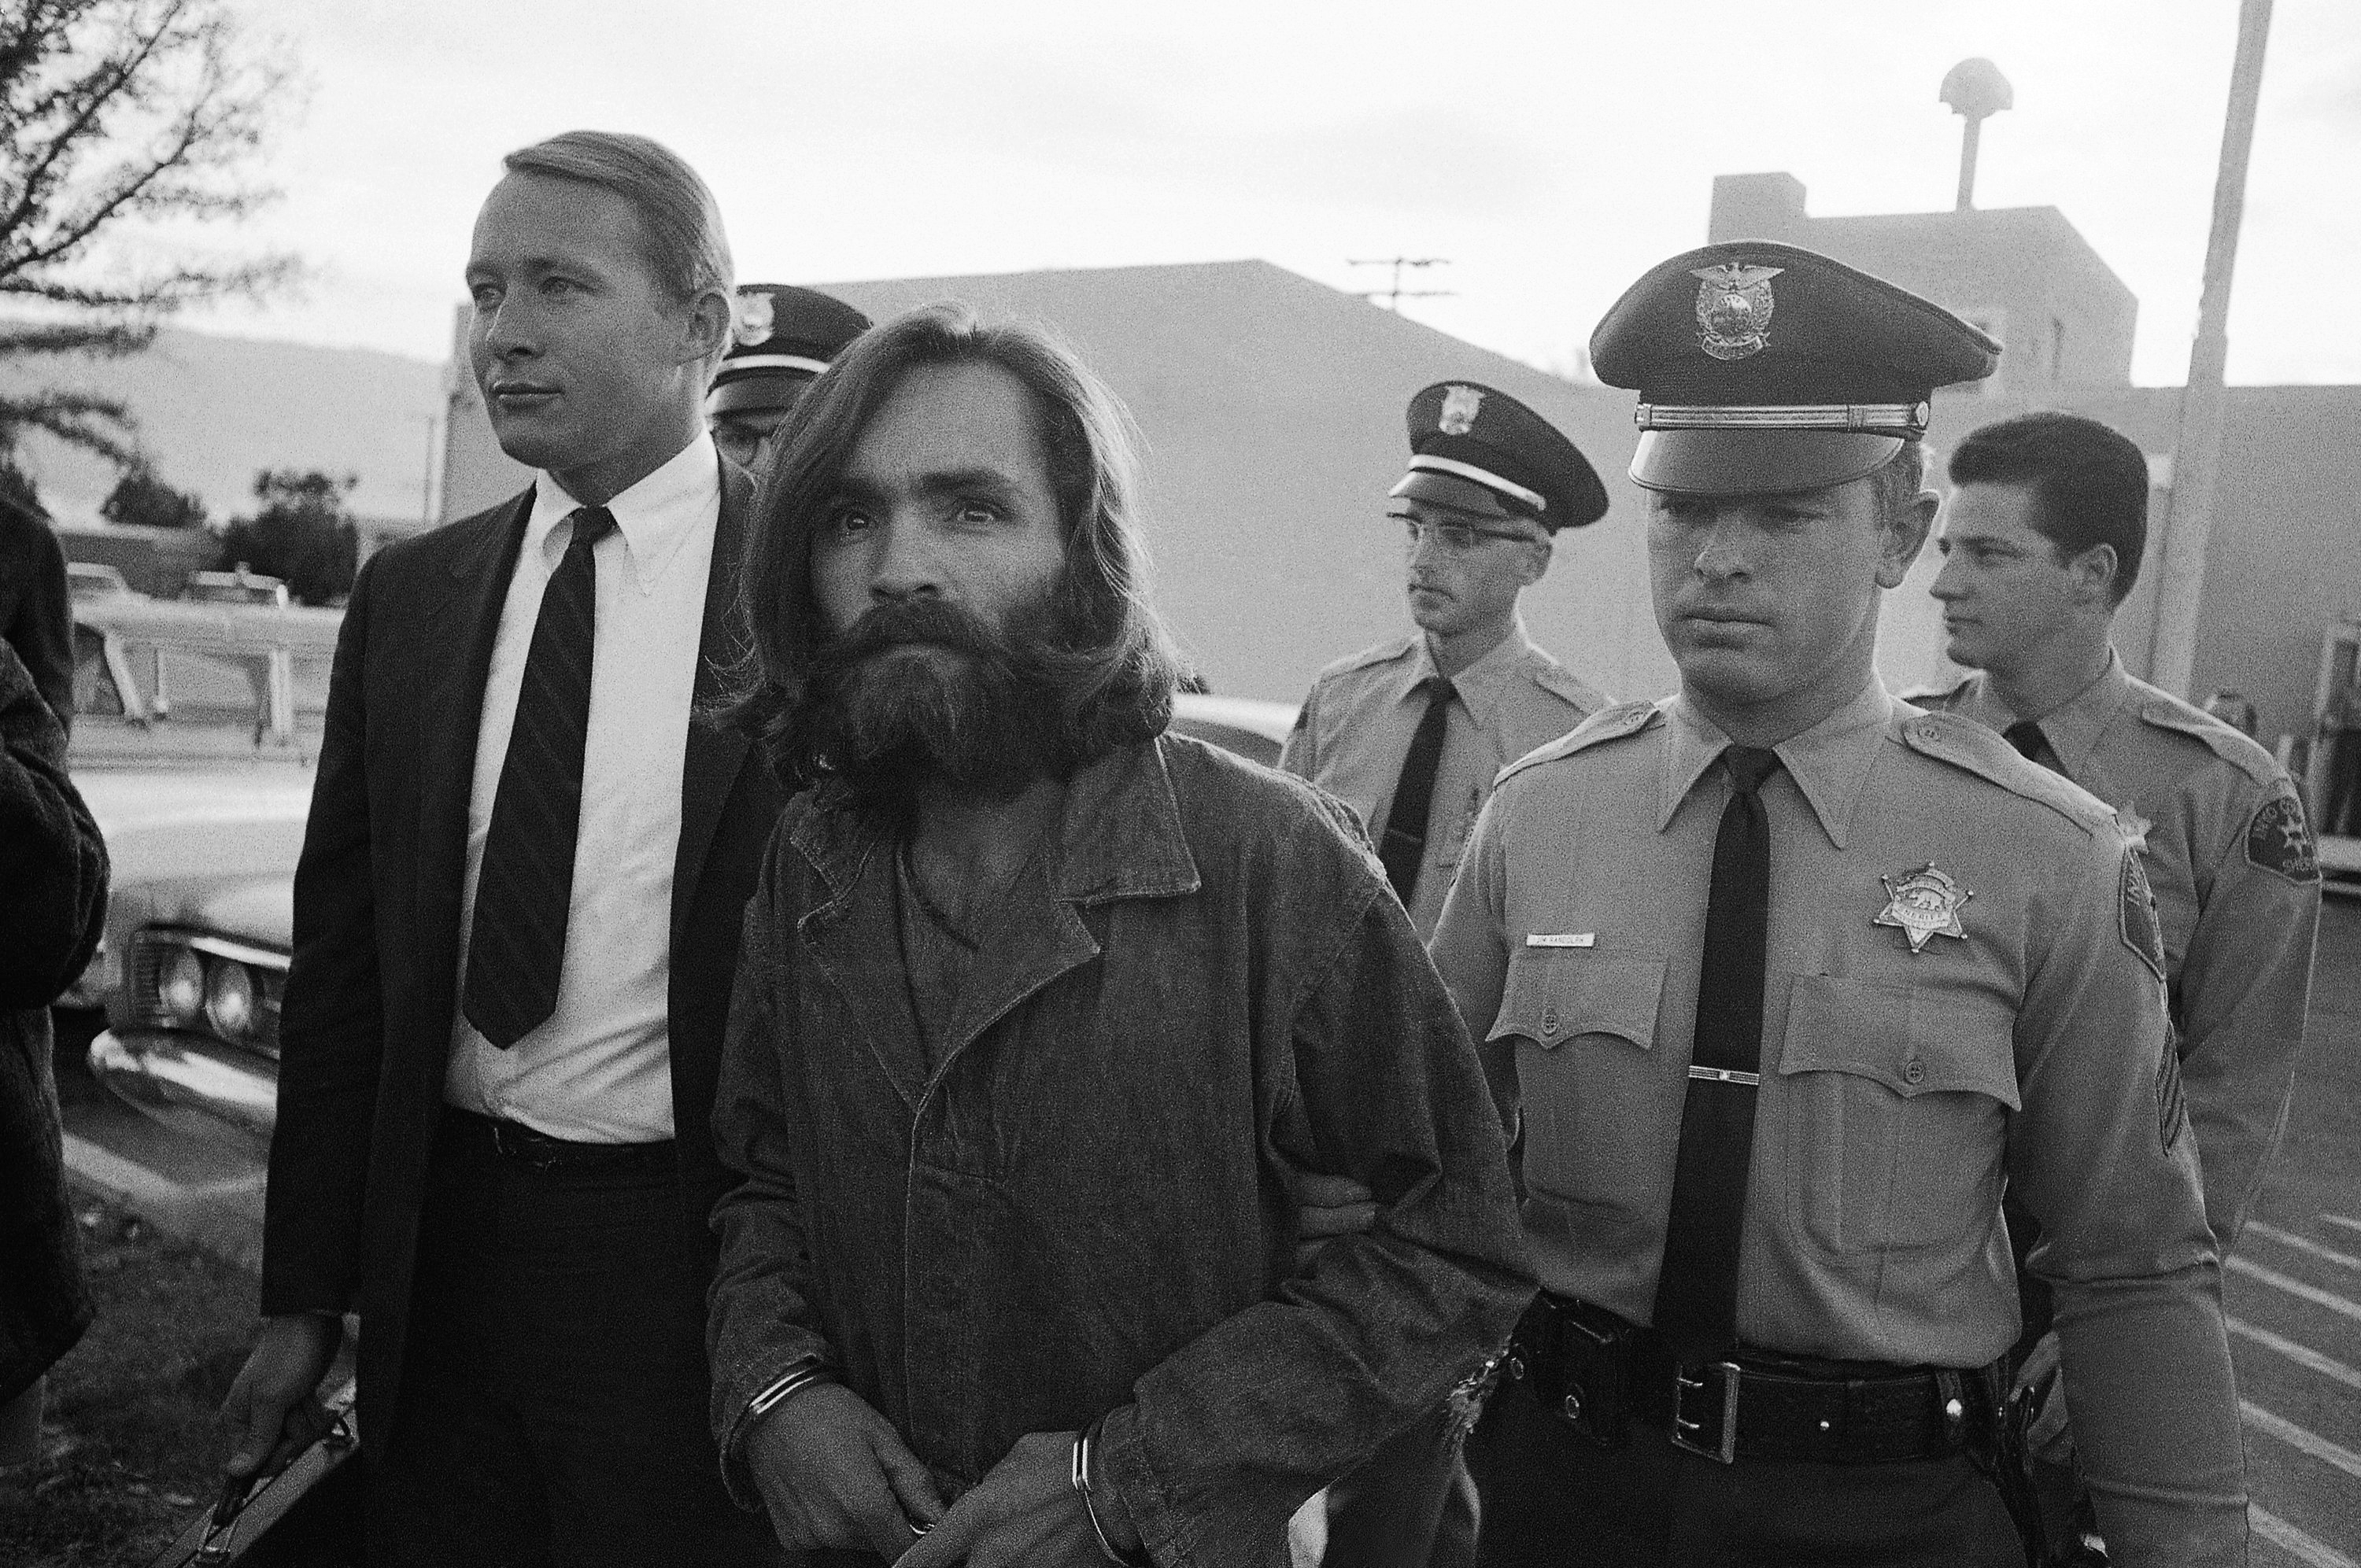 Charles Manson: 1970 RS Interview About Manson Family Murders